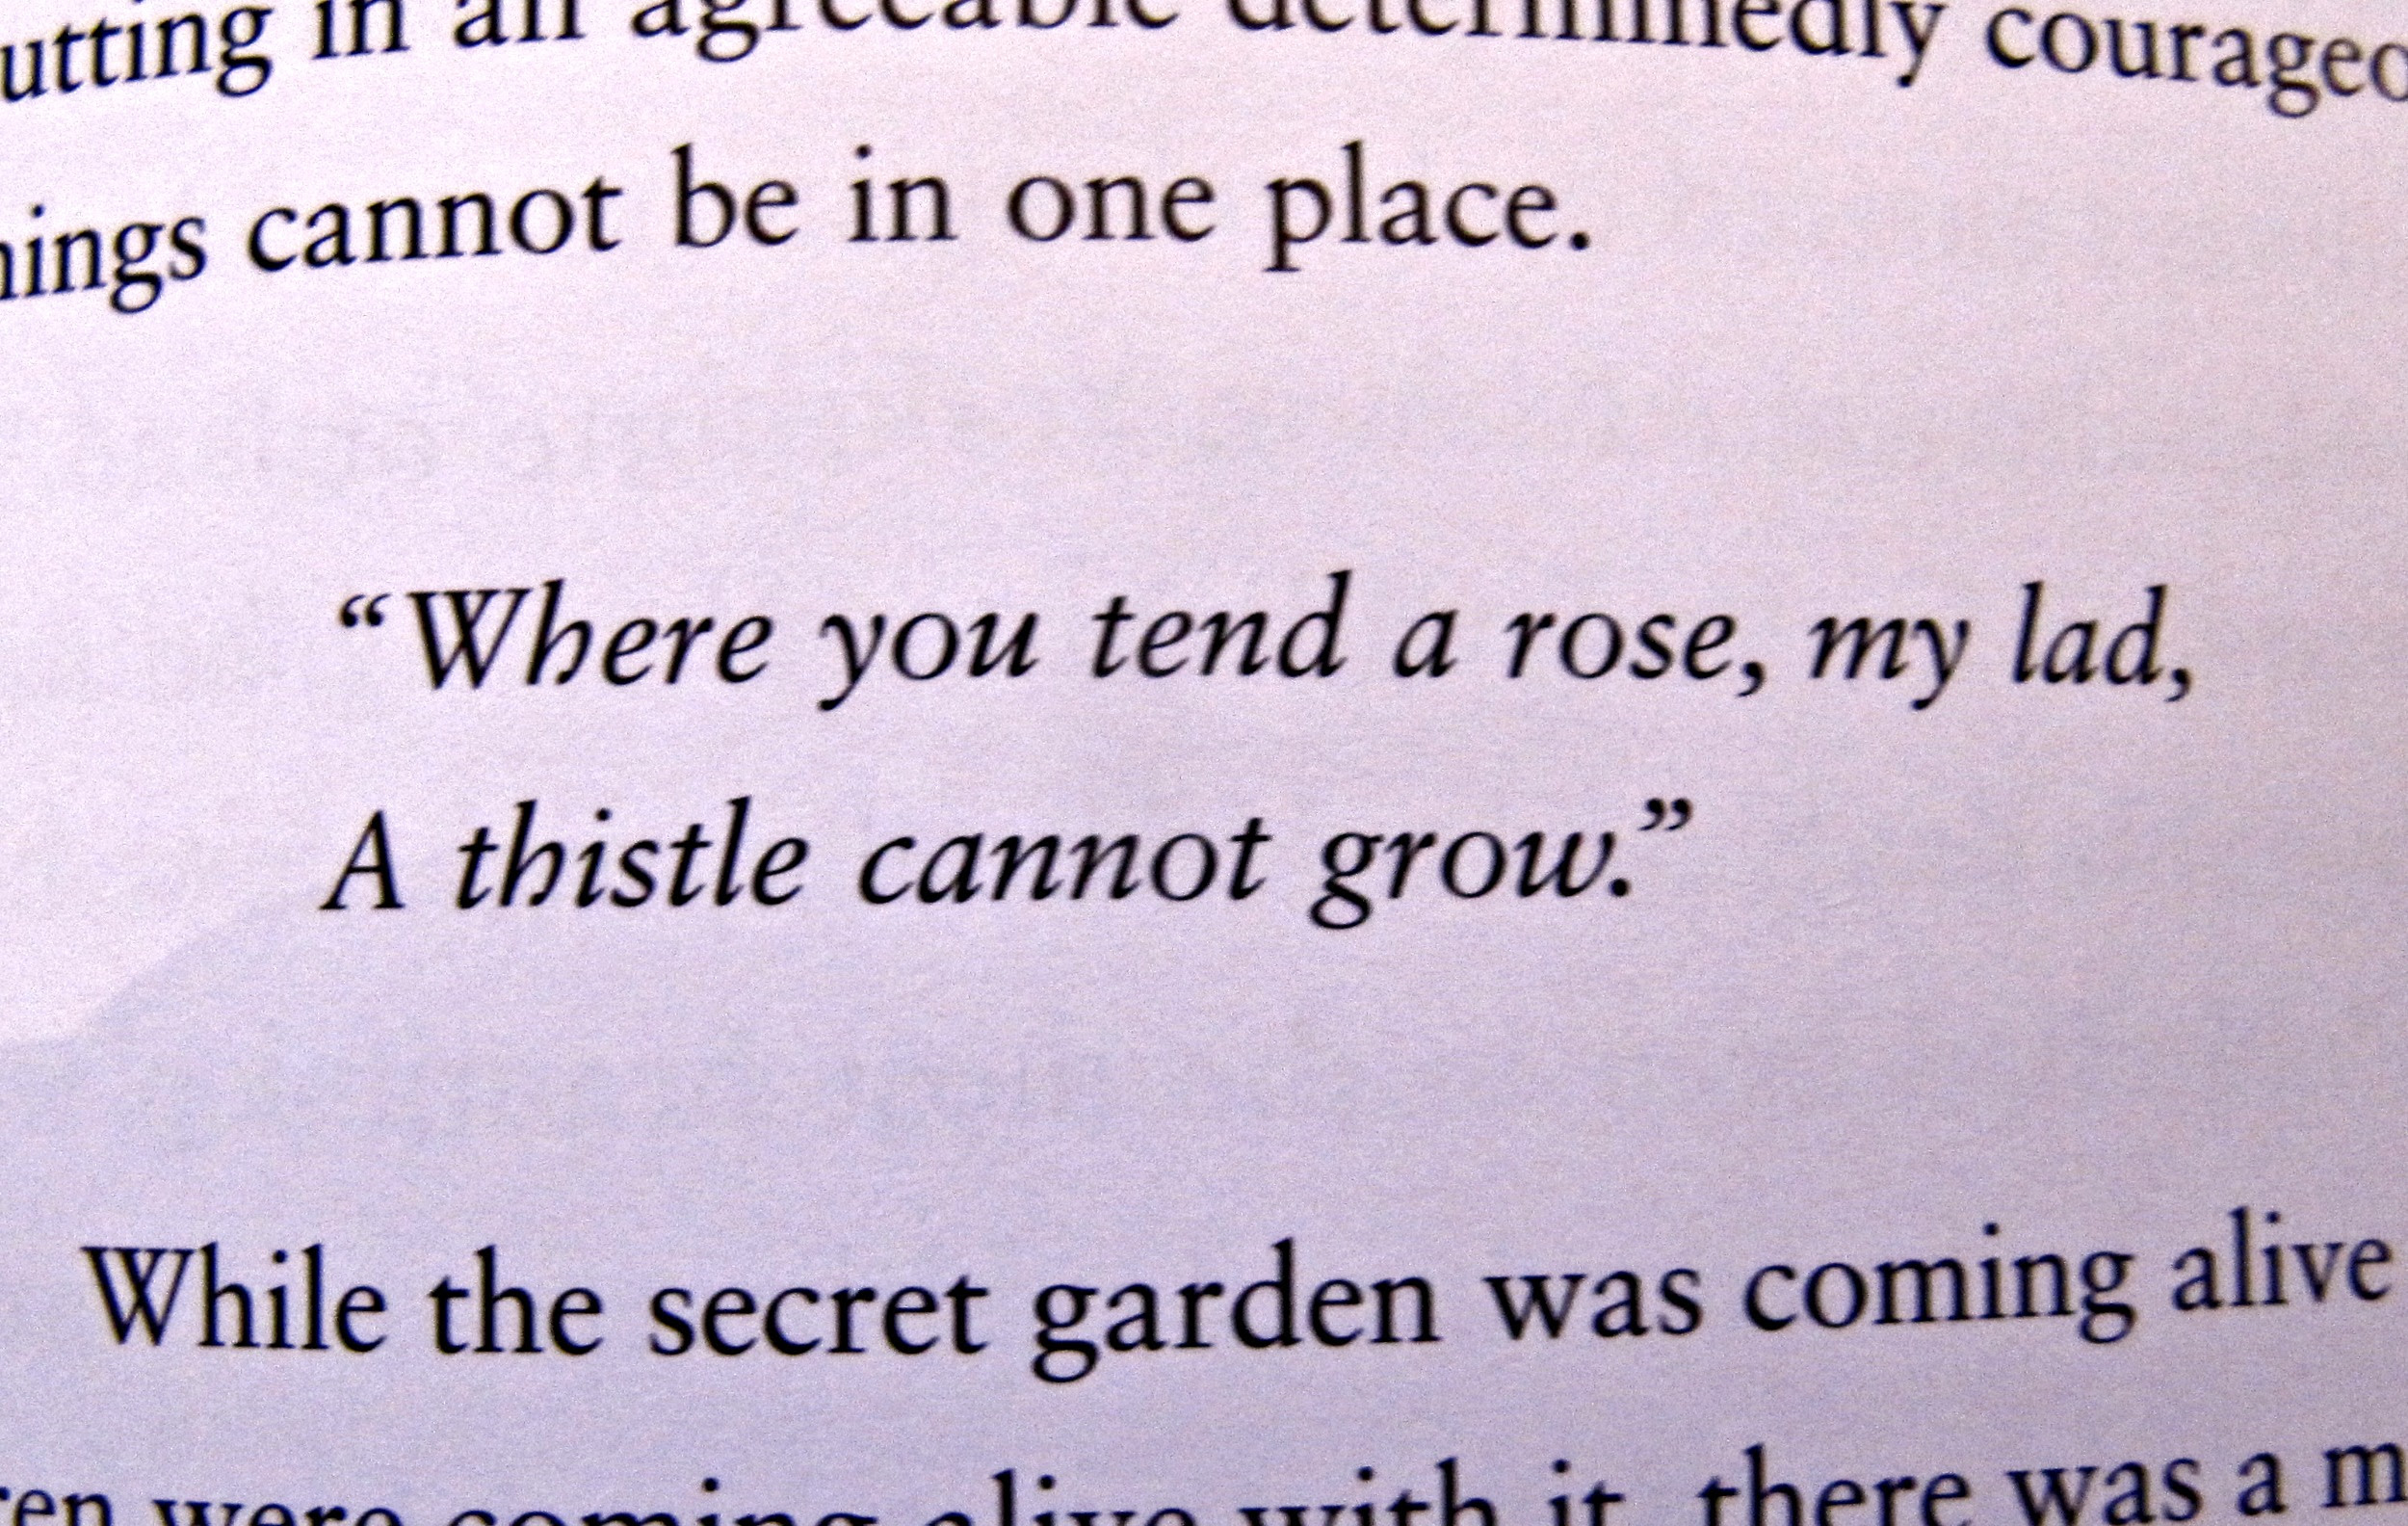 Discussion Points From The Secret Garden